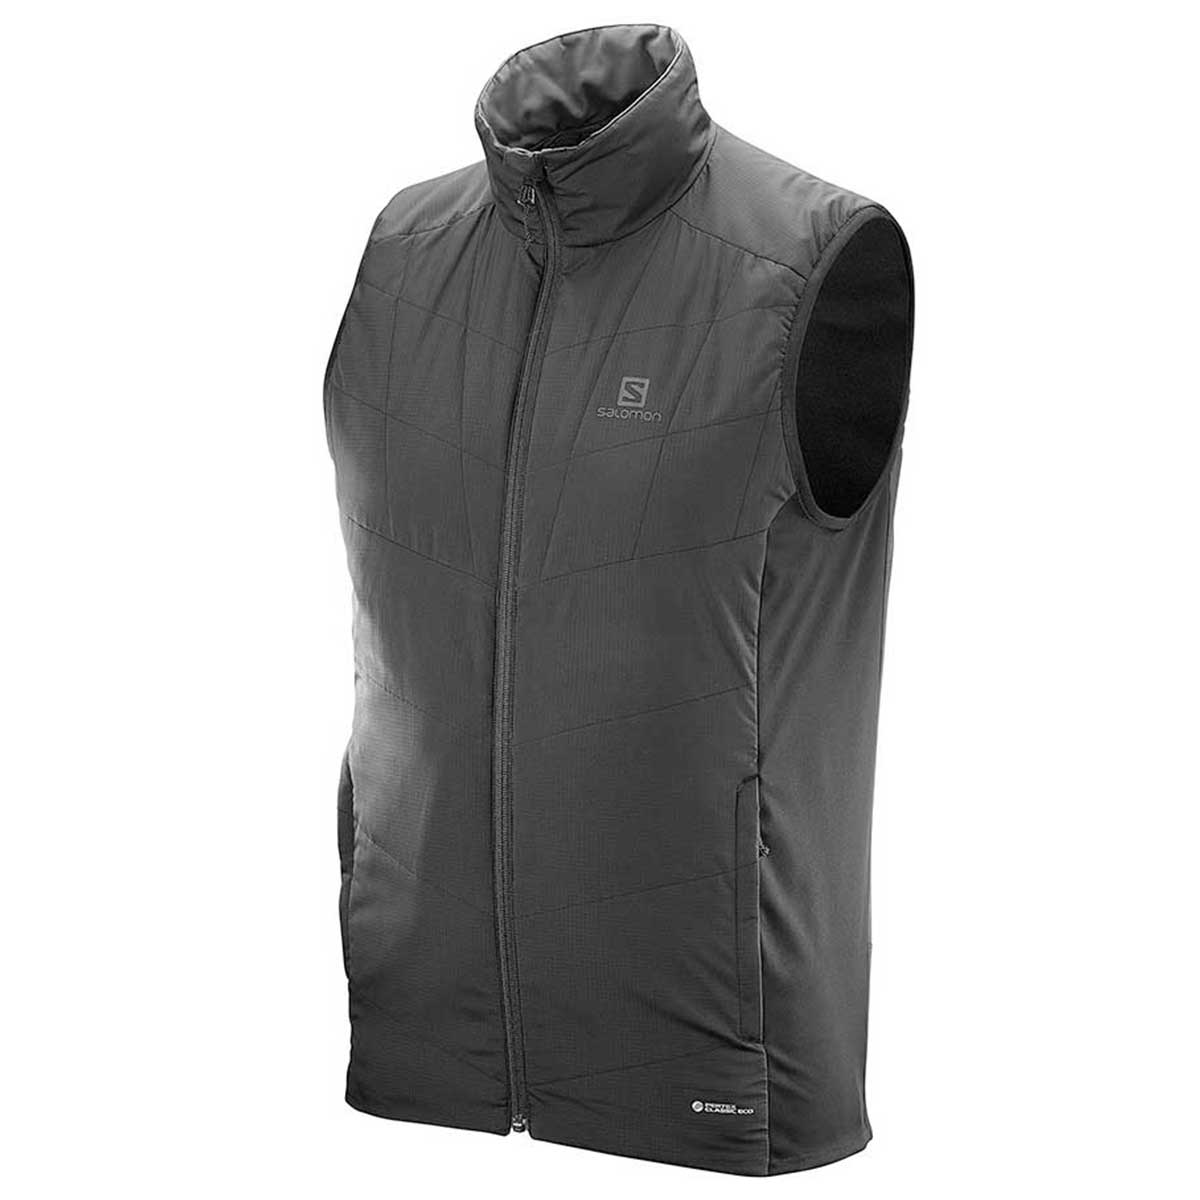 Salomon Men's Drifter Mid Vest in Black and Forge Iron